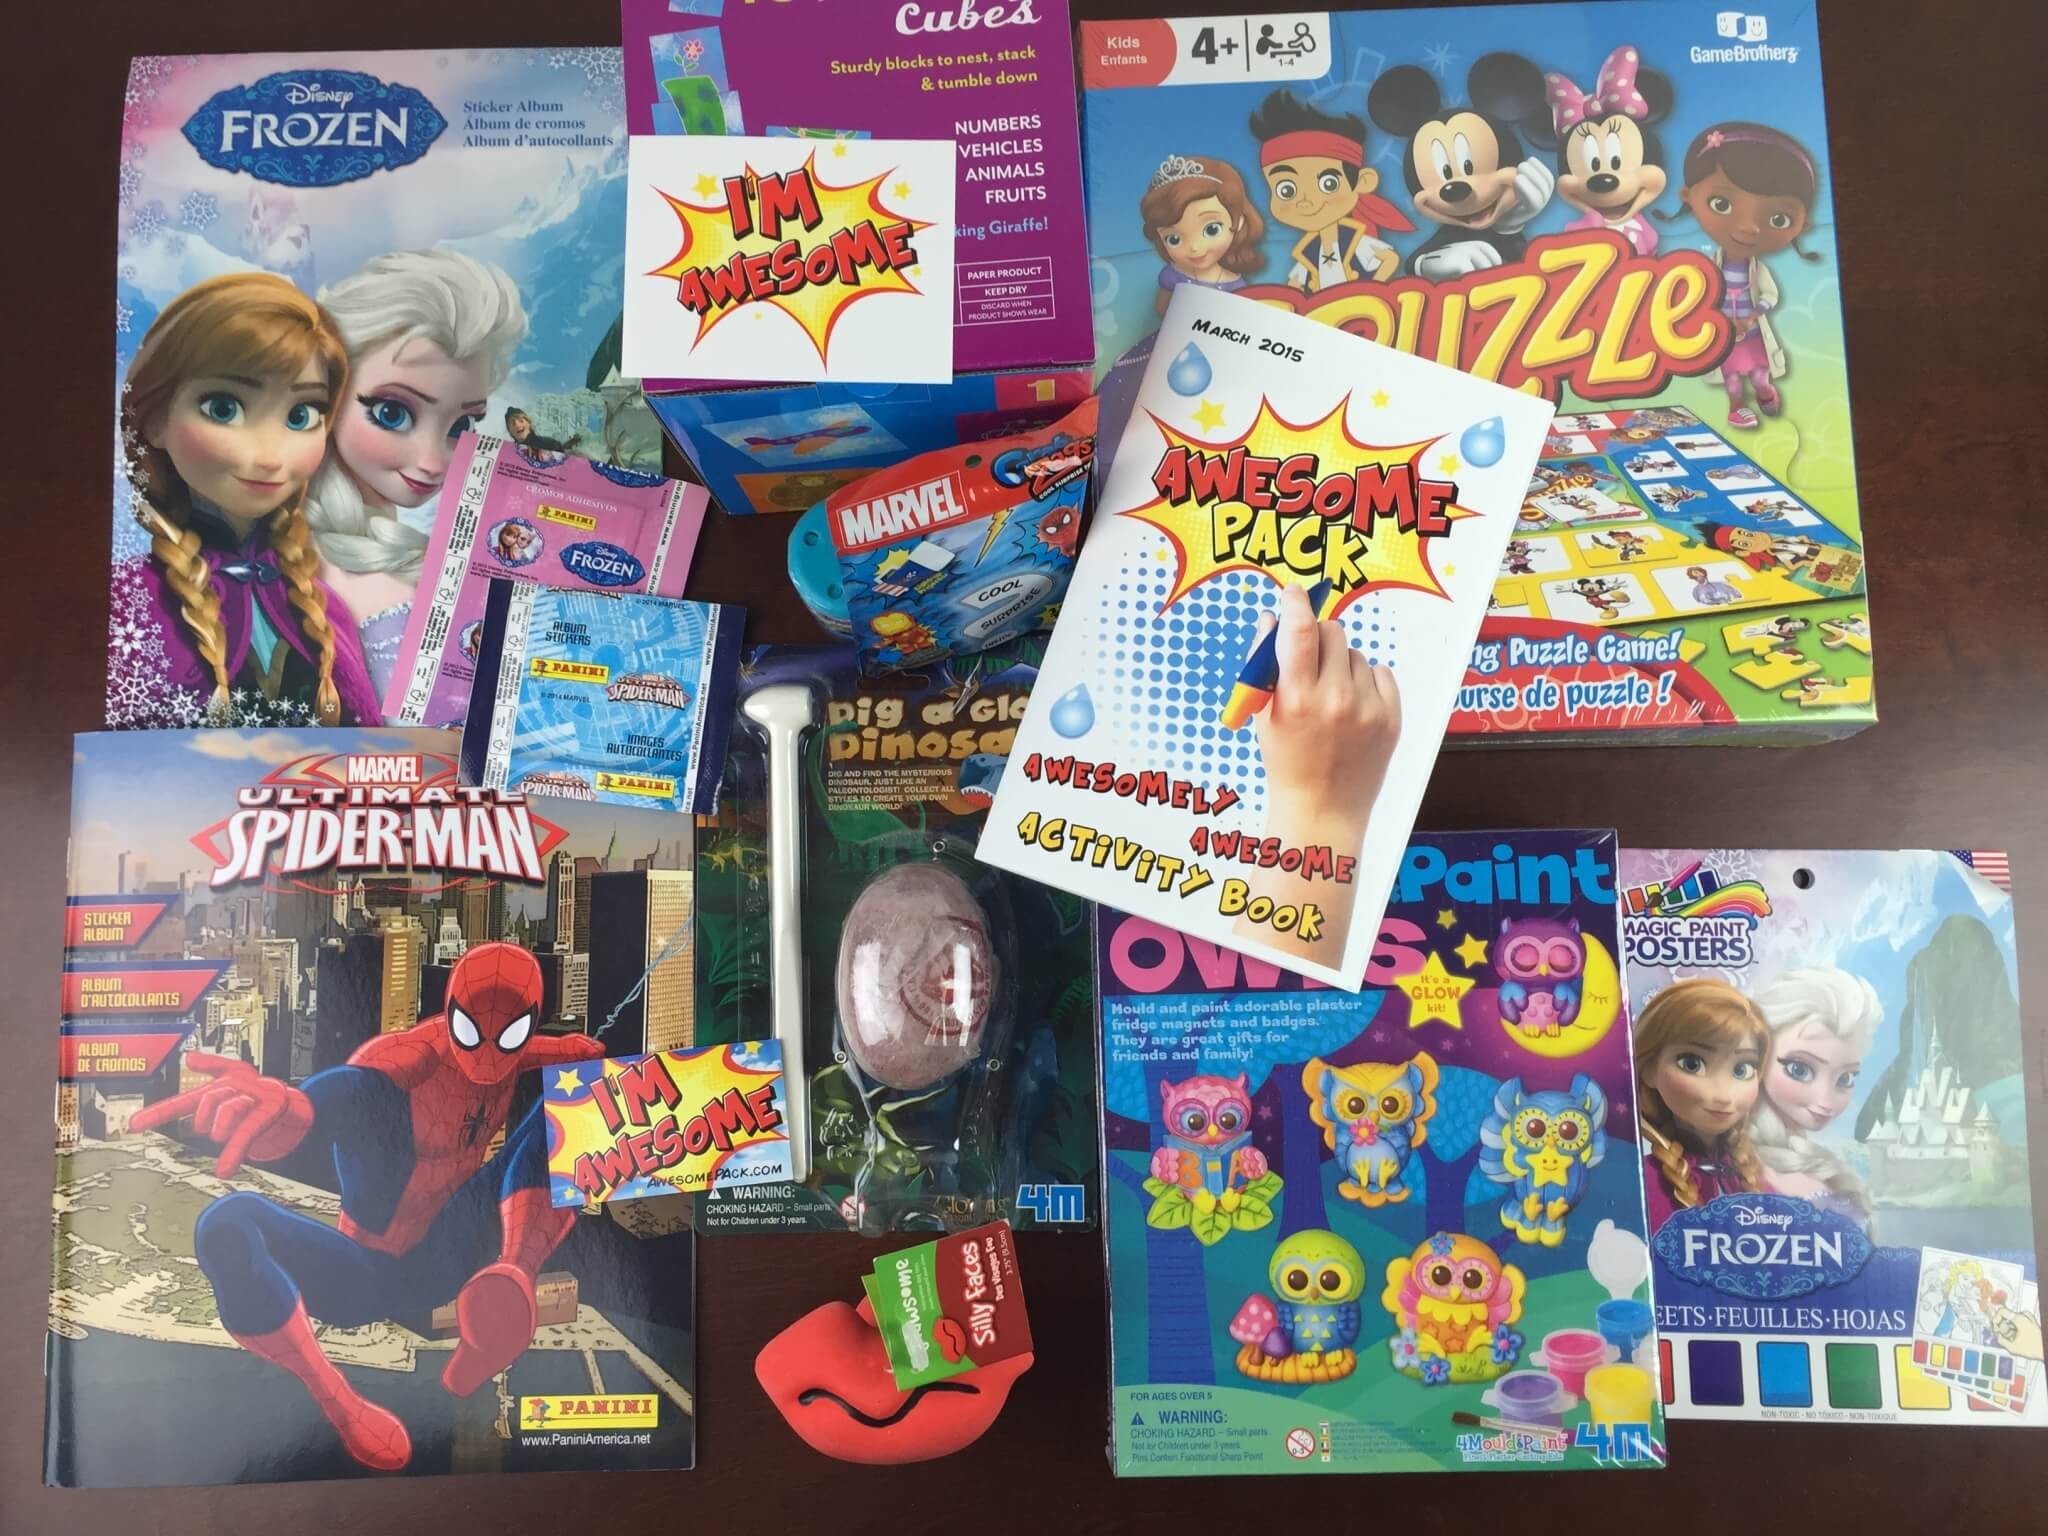 March 2015 Awesome Pack Subscription Box Review + Coupon